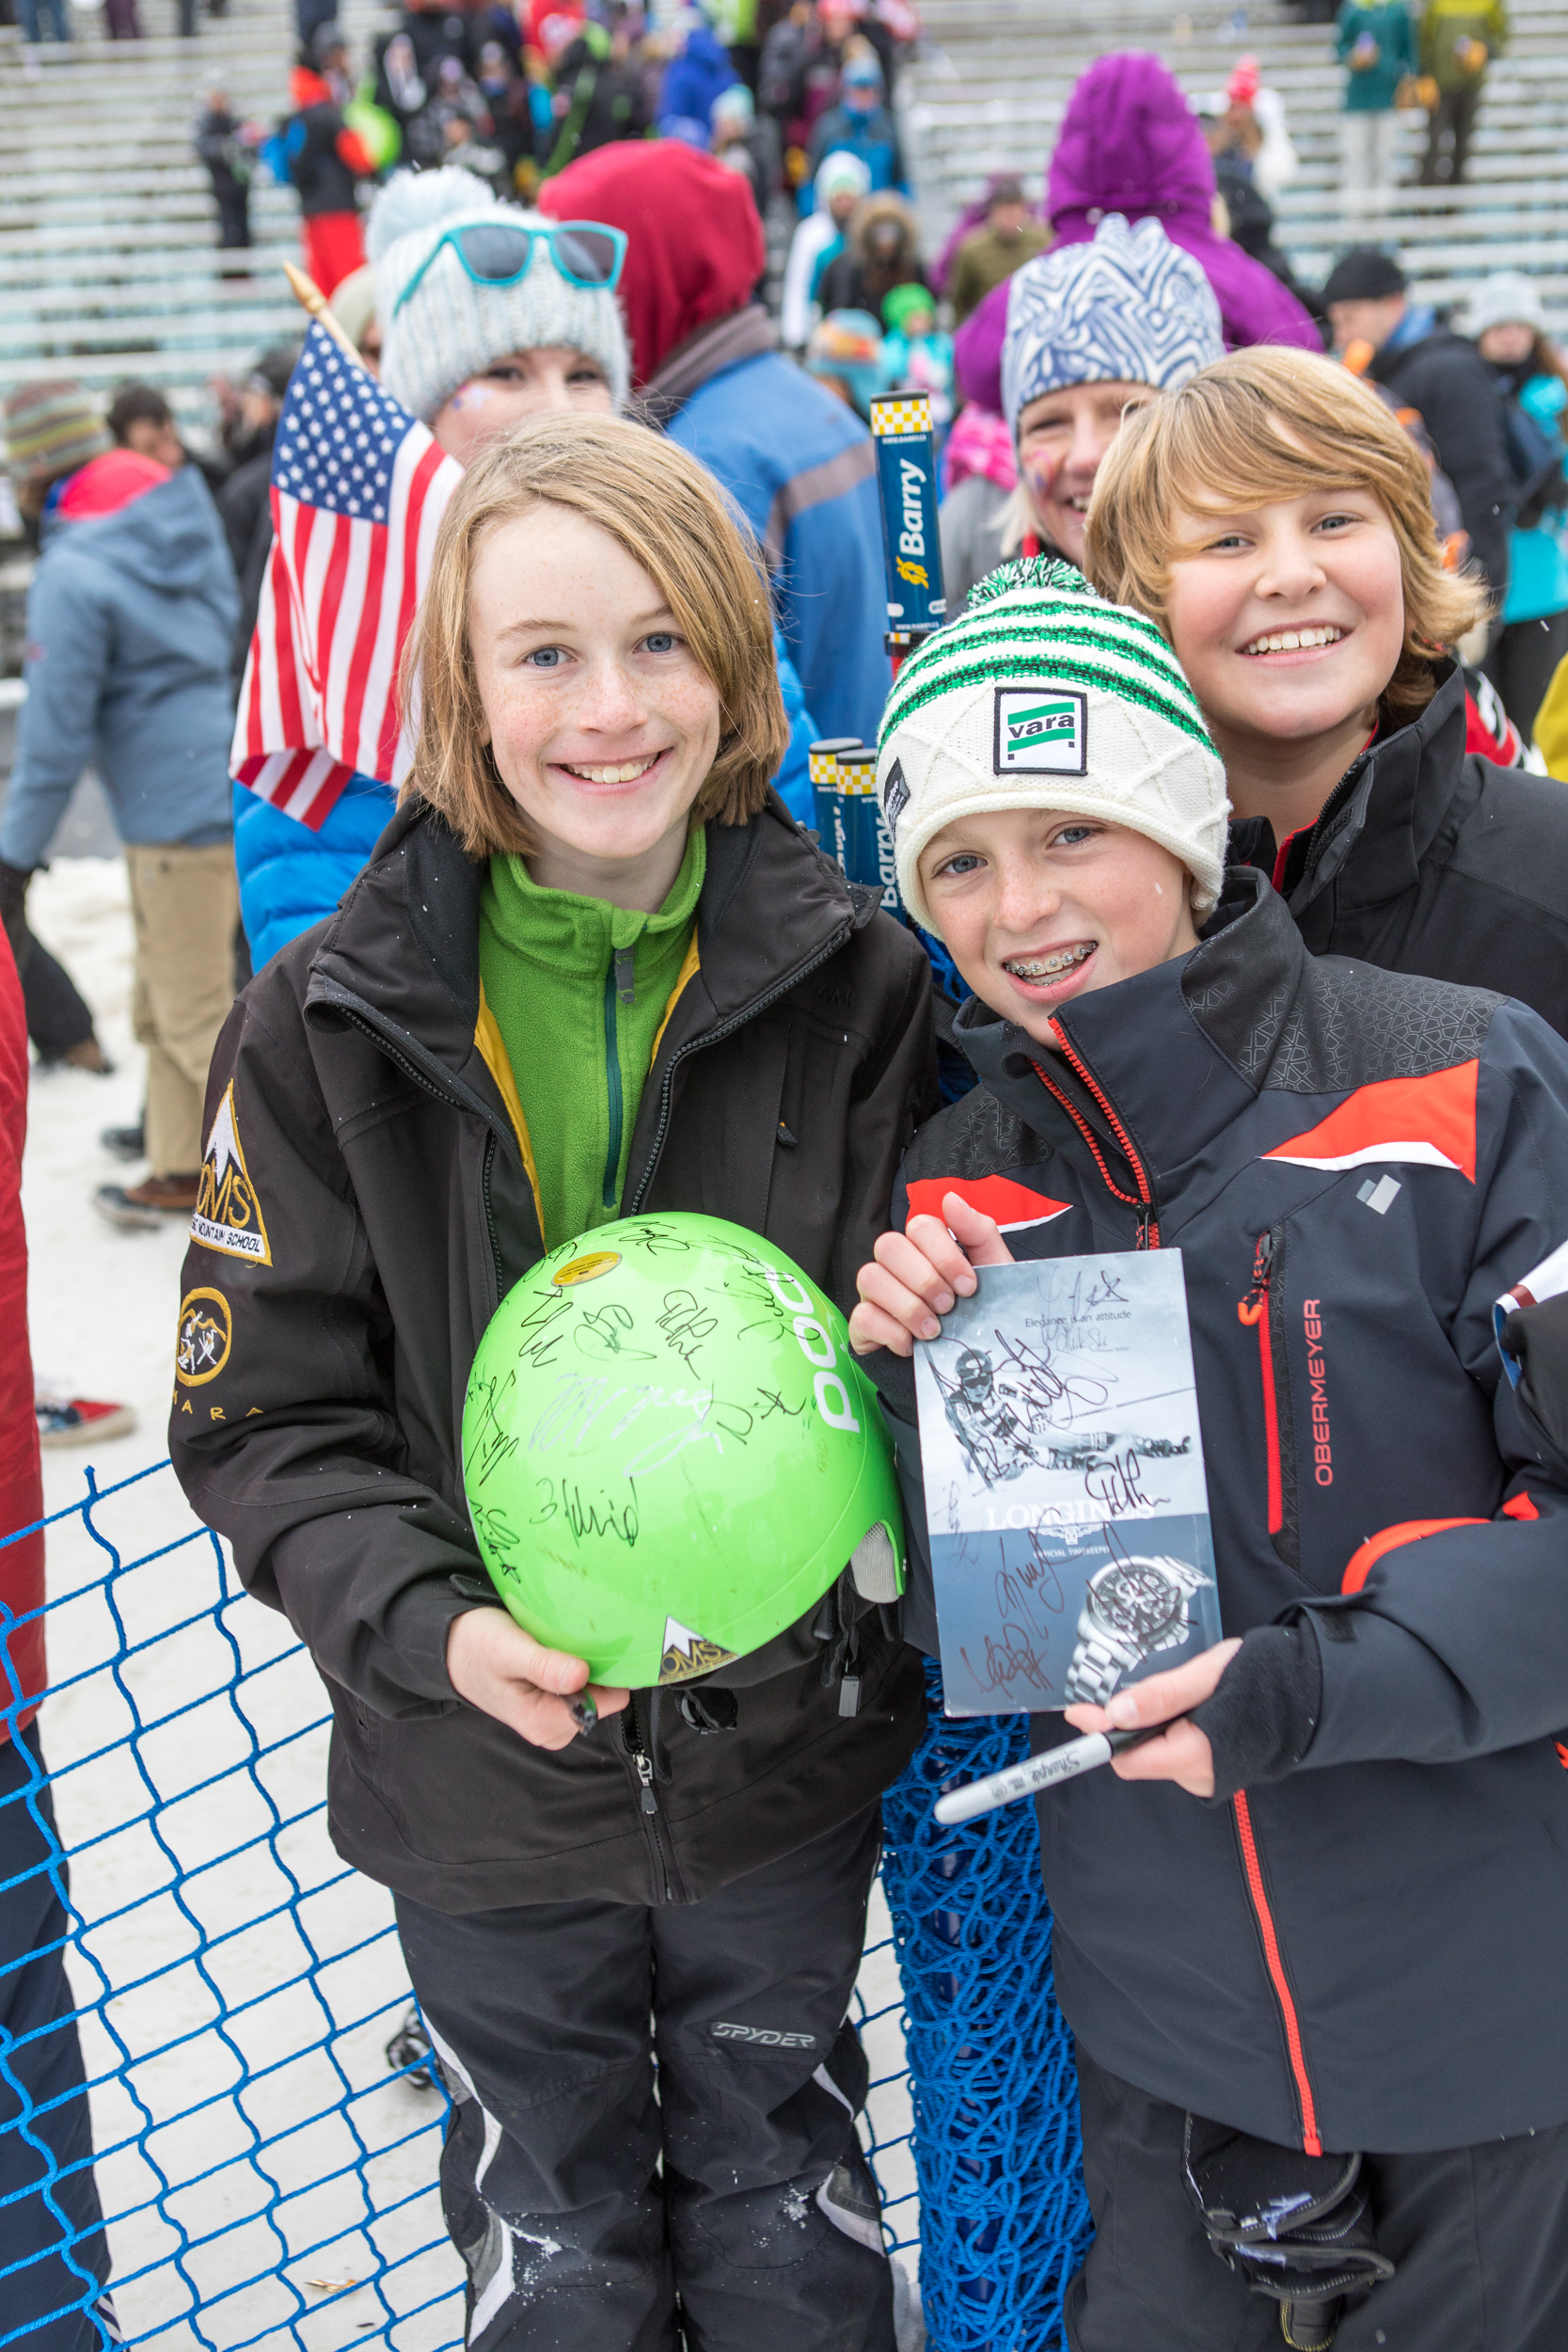 Killington-World-Cup-Autographs.jpg